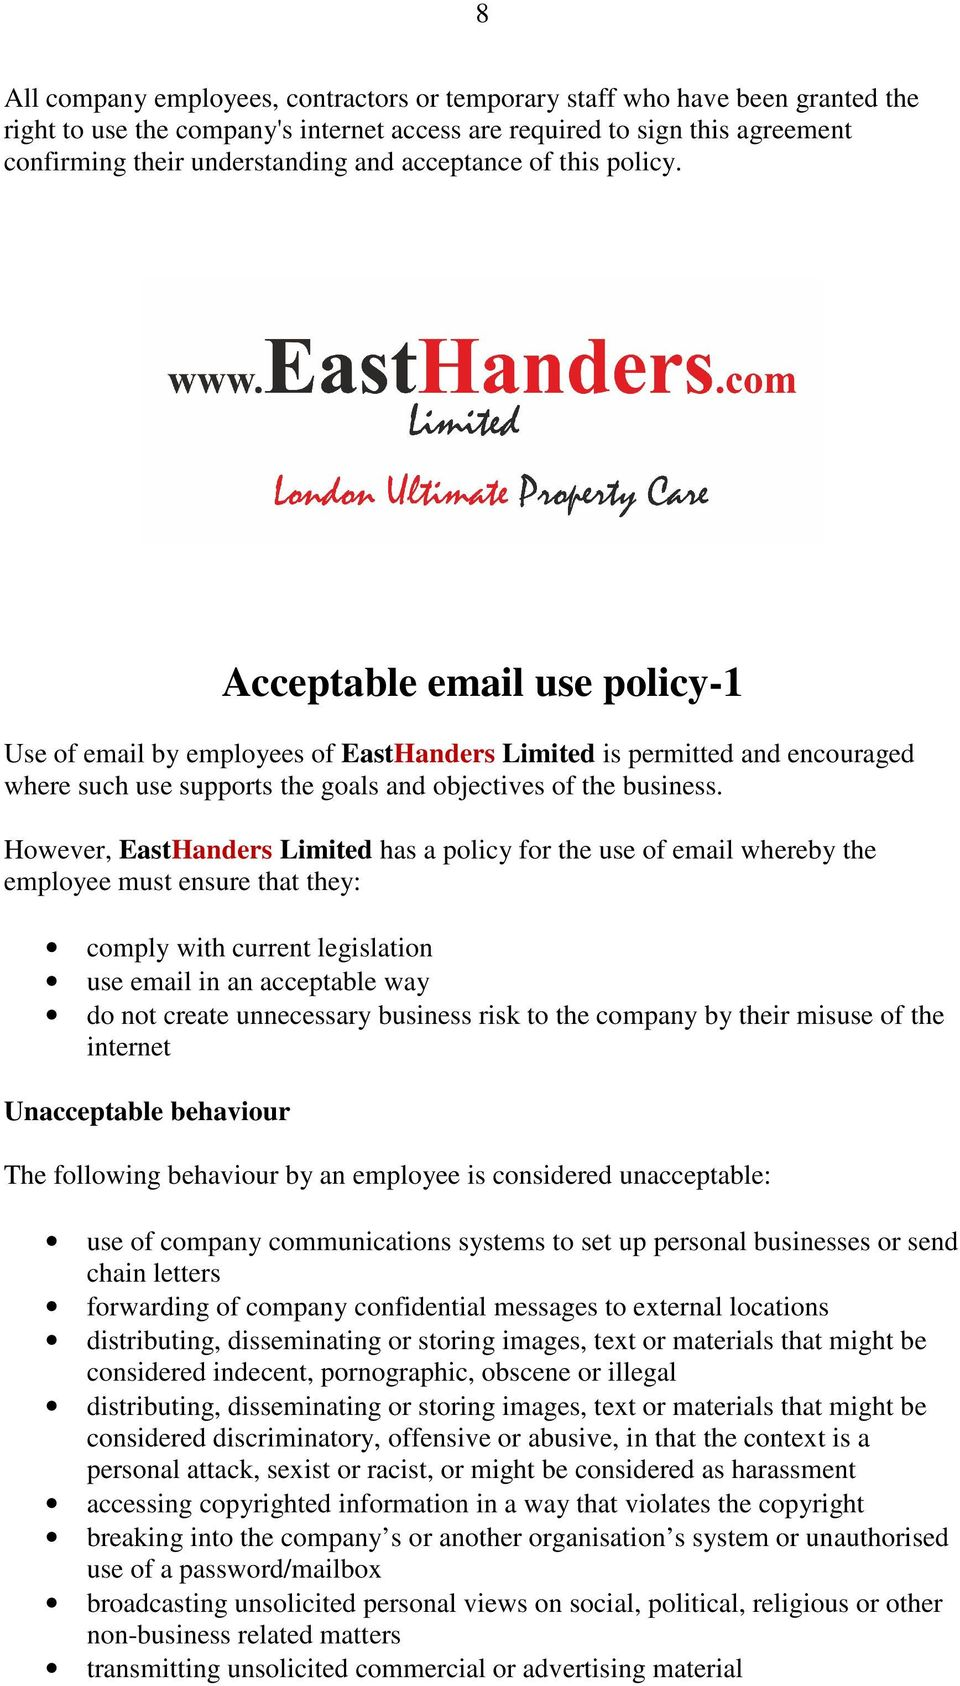 However, EastHanders Limited has a policy for the use of email whereby the employee must ensure that they: comply with current legislation use email in an acceptable way do not create unnecessary